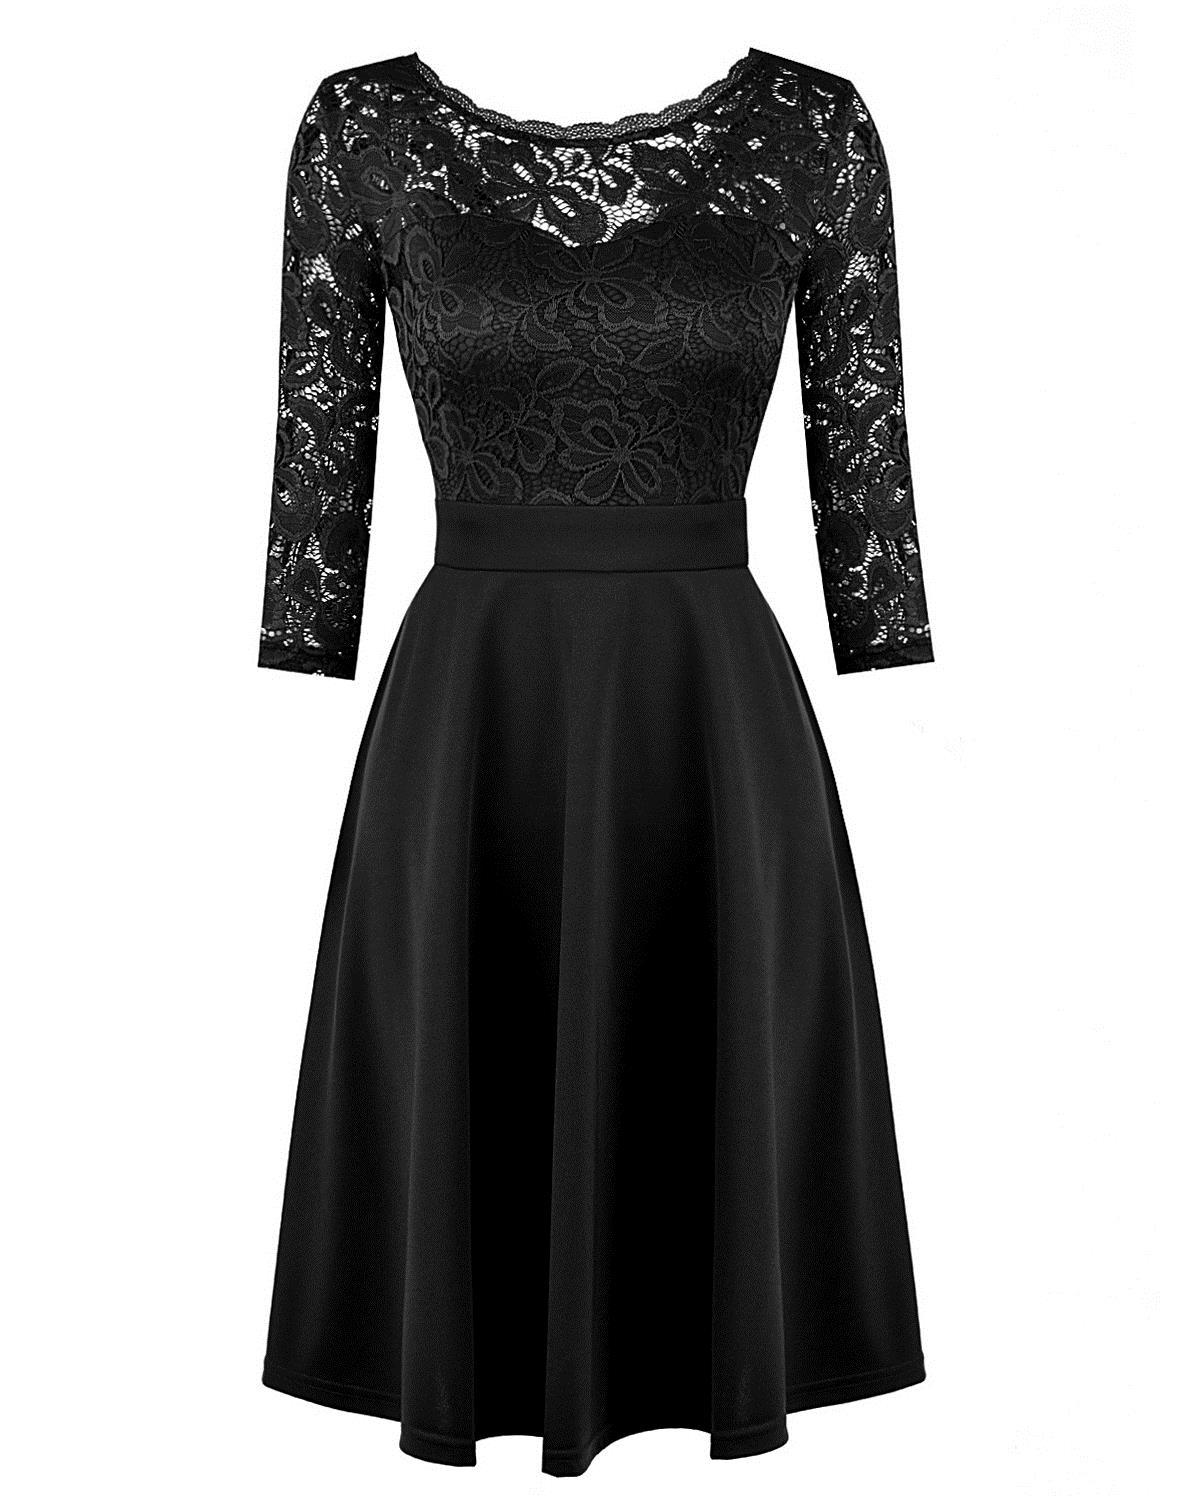 714cad7477 2019 Women OL Sexy Lace Dress Lace 3 4 Sleeve High Waist A Line Dress  Black Blue White Yellow Sheer Lace Splice Summer Dress Casual Evening  Dresses Womens ...